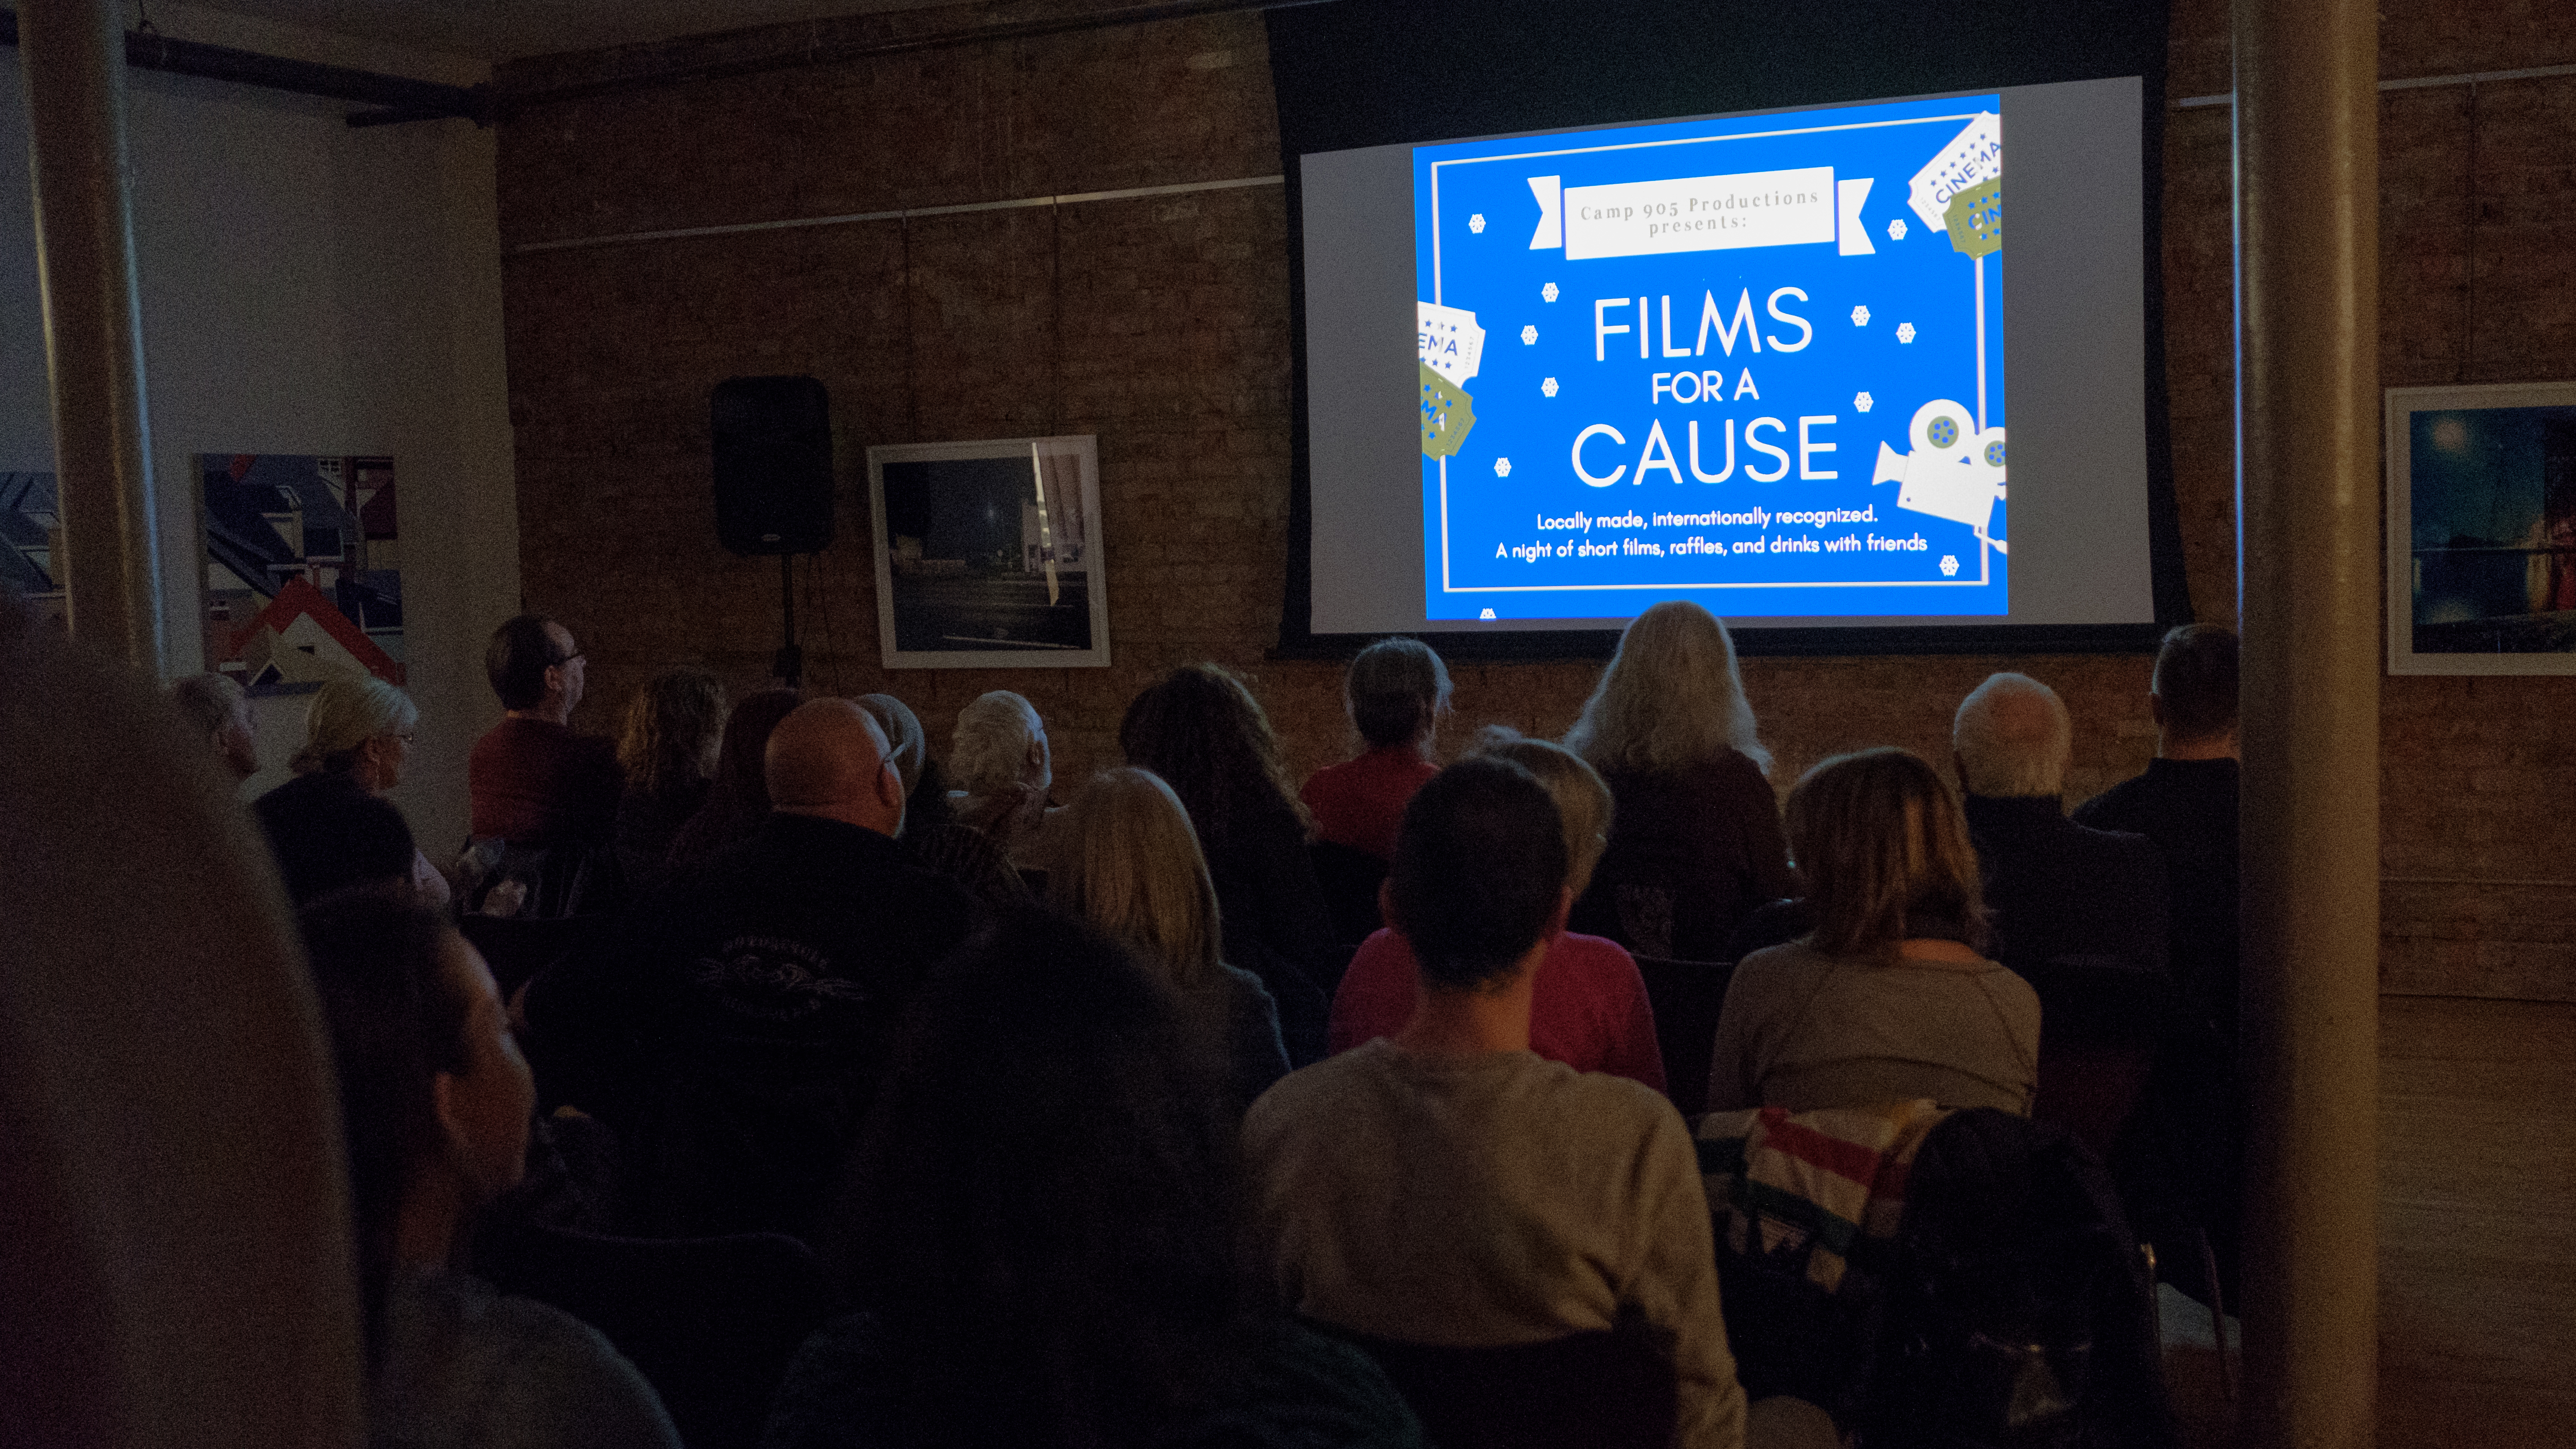 Films for a Cause